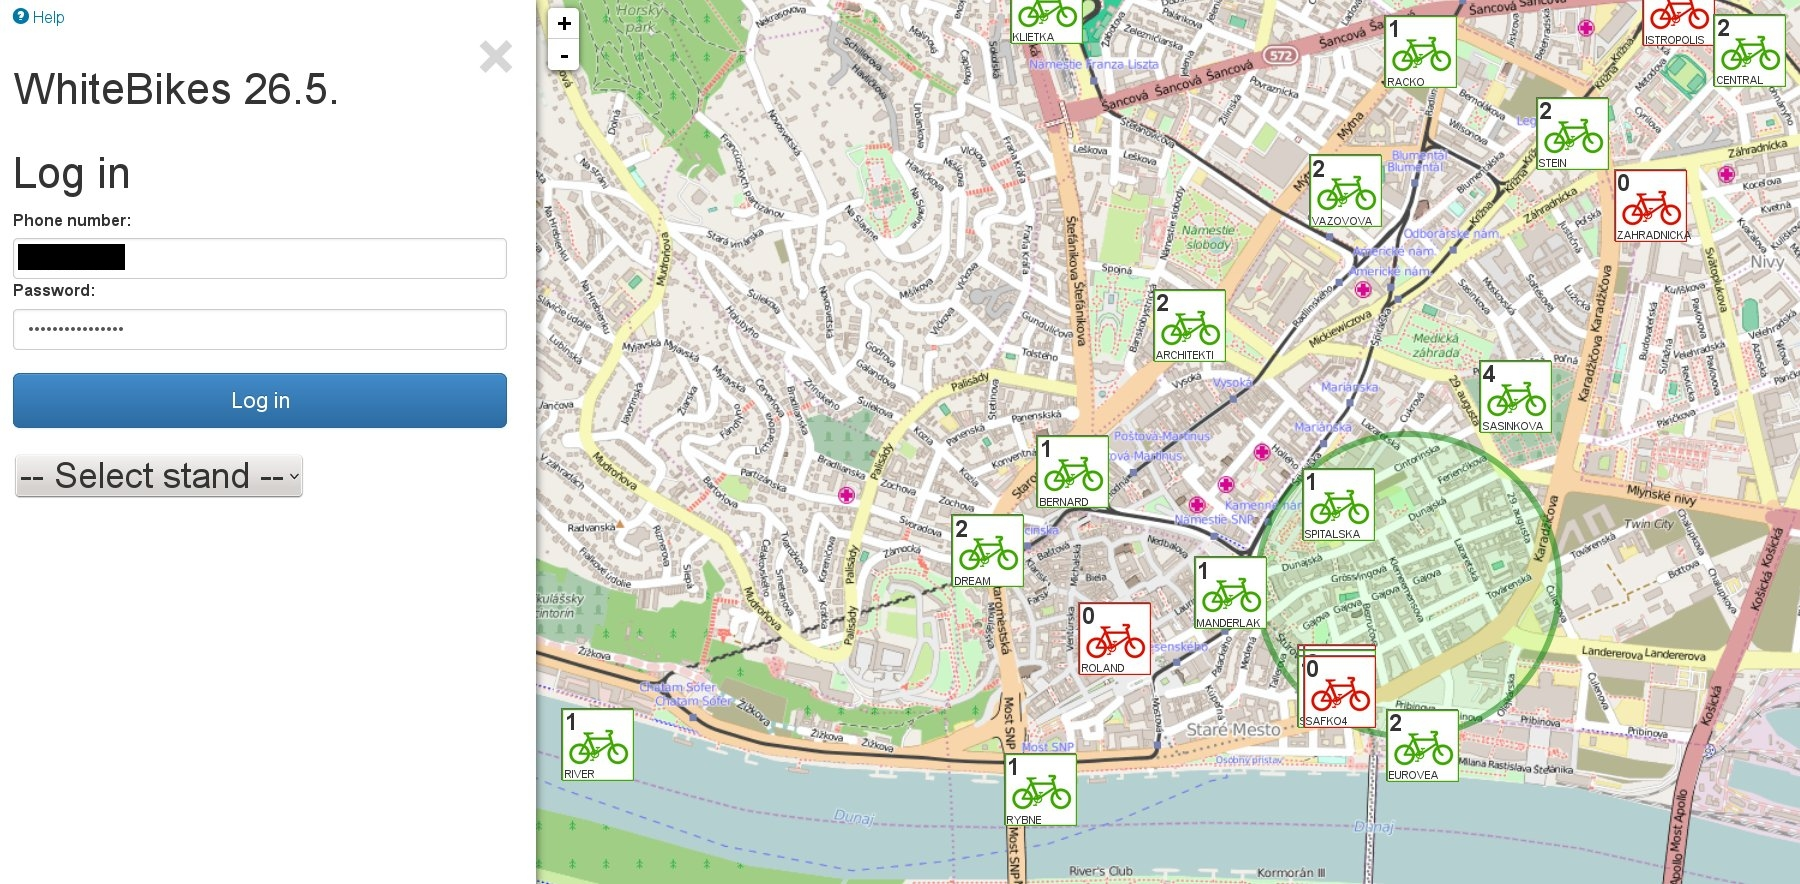 Web app - map with stands